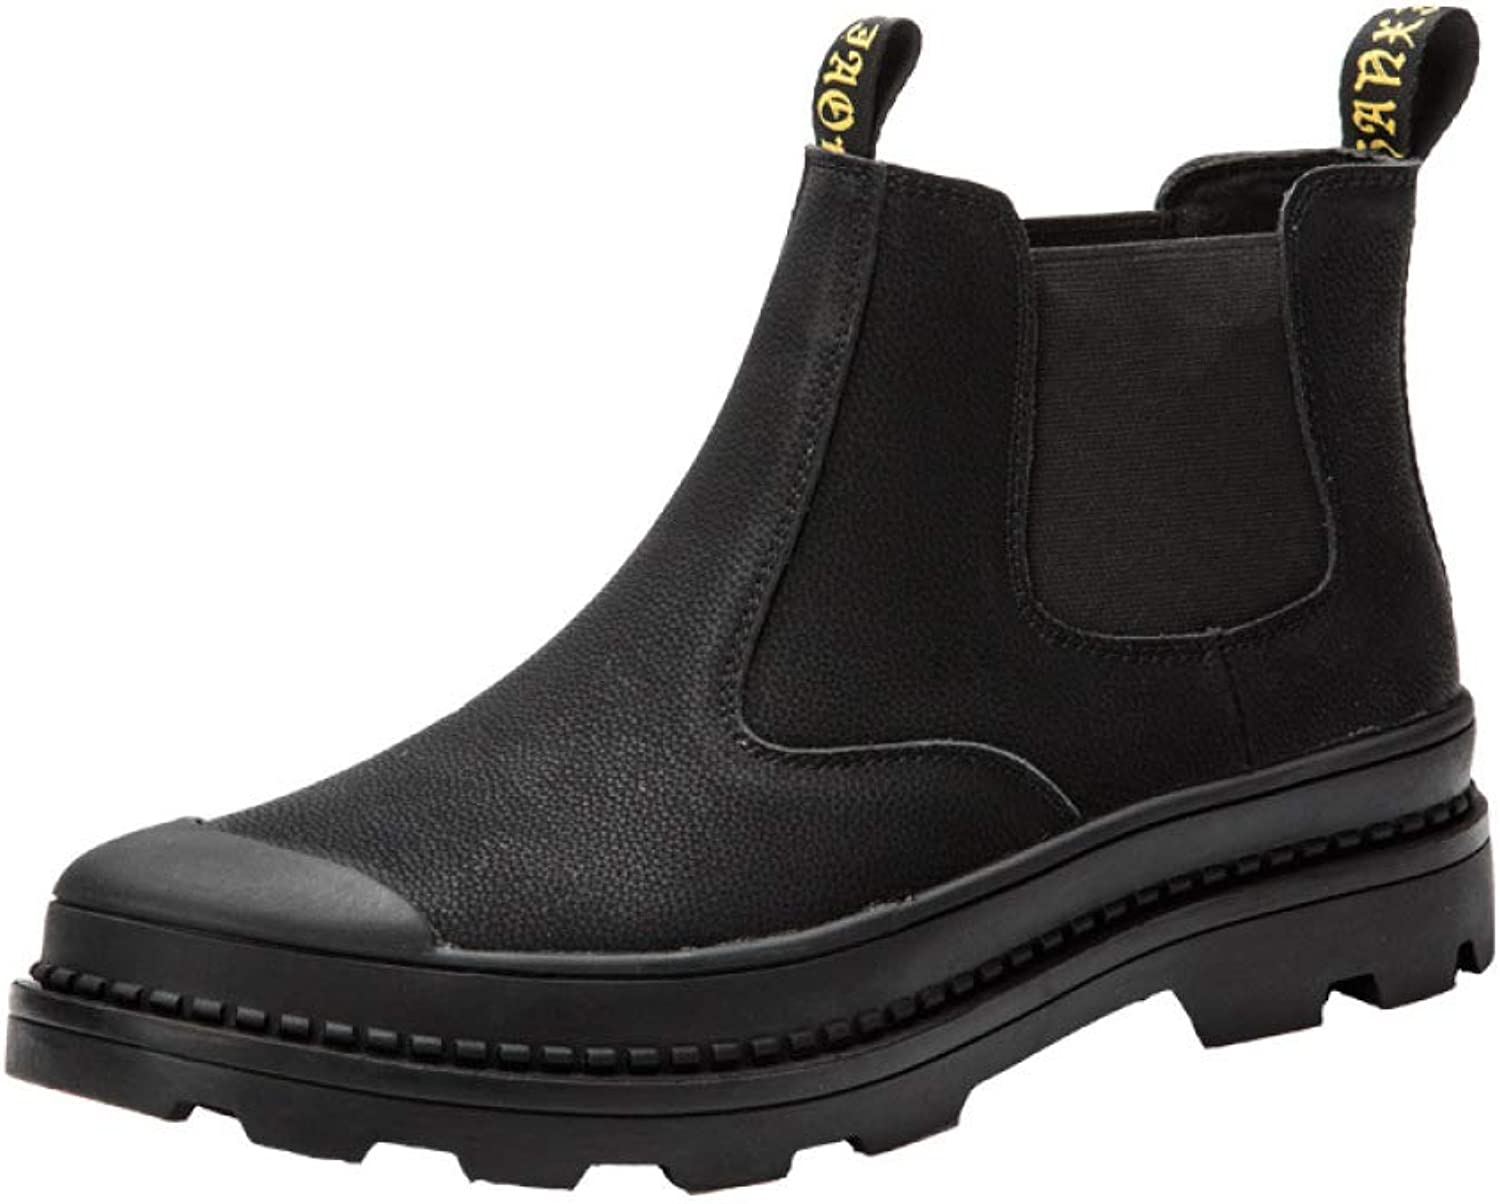 XINGF Men's Black Round Martin Boots, Leather, England, Chelsea Boots, Fashion, High Help, Comfortable Men's shoes